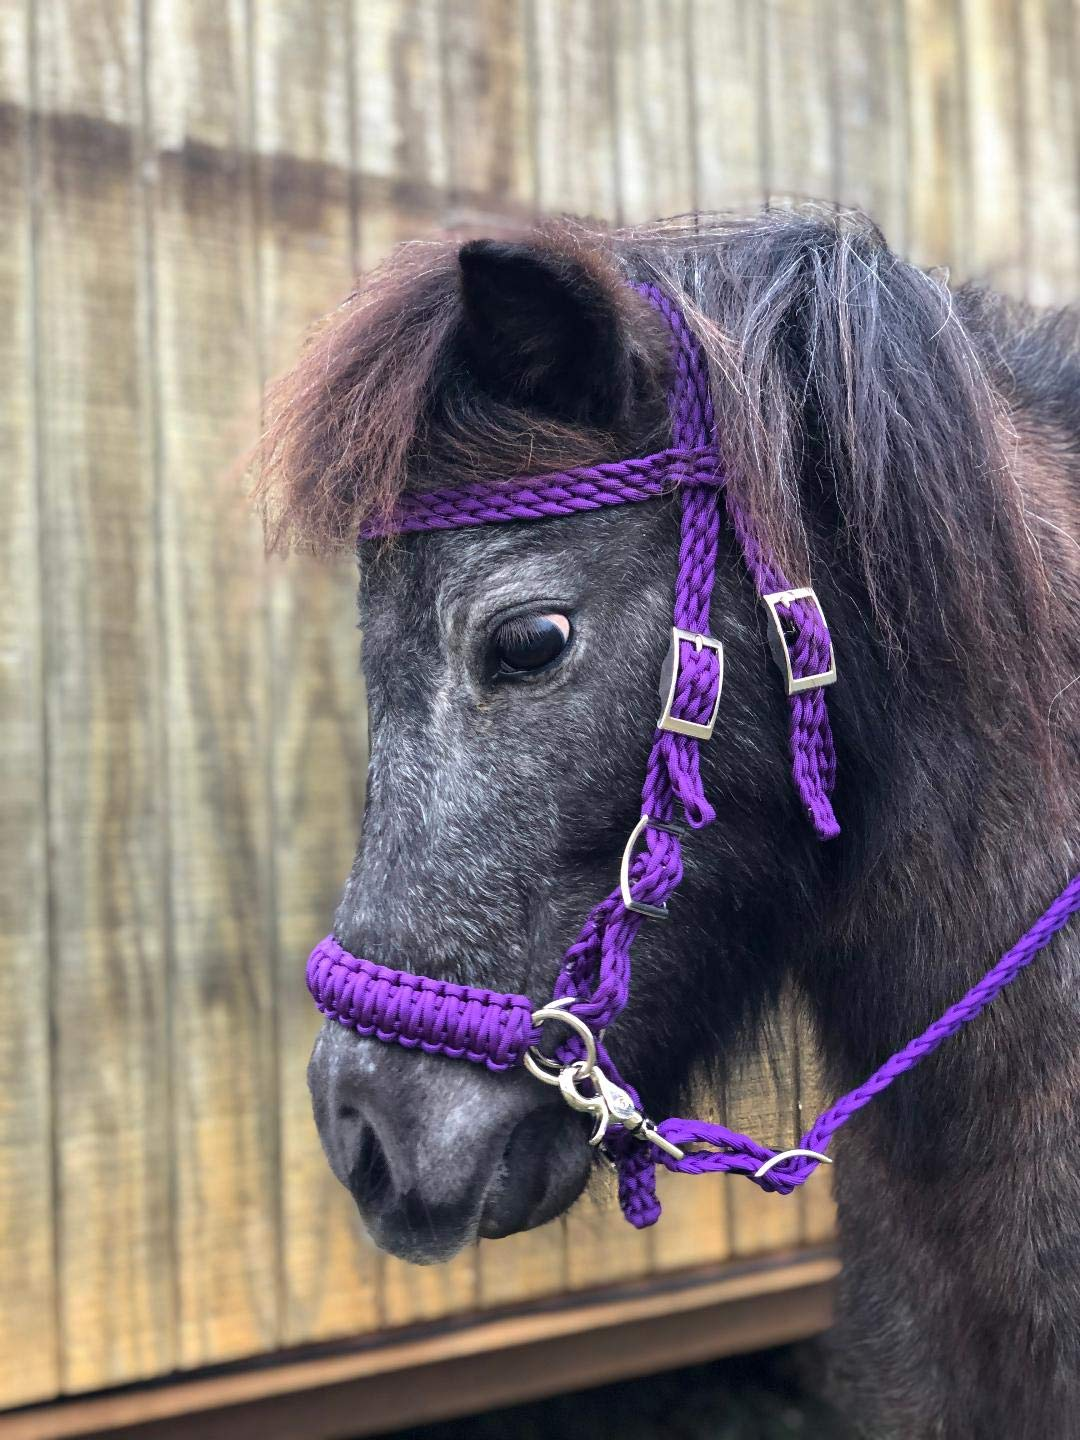 NEW HORSE TACK! PURPLE//BLACK Braided Nylon Bit Less Bridle with Reins